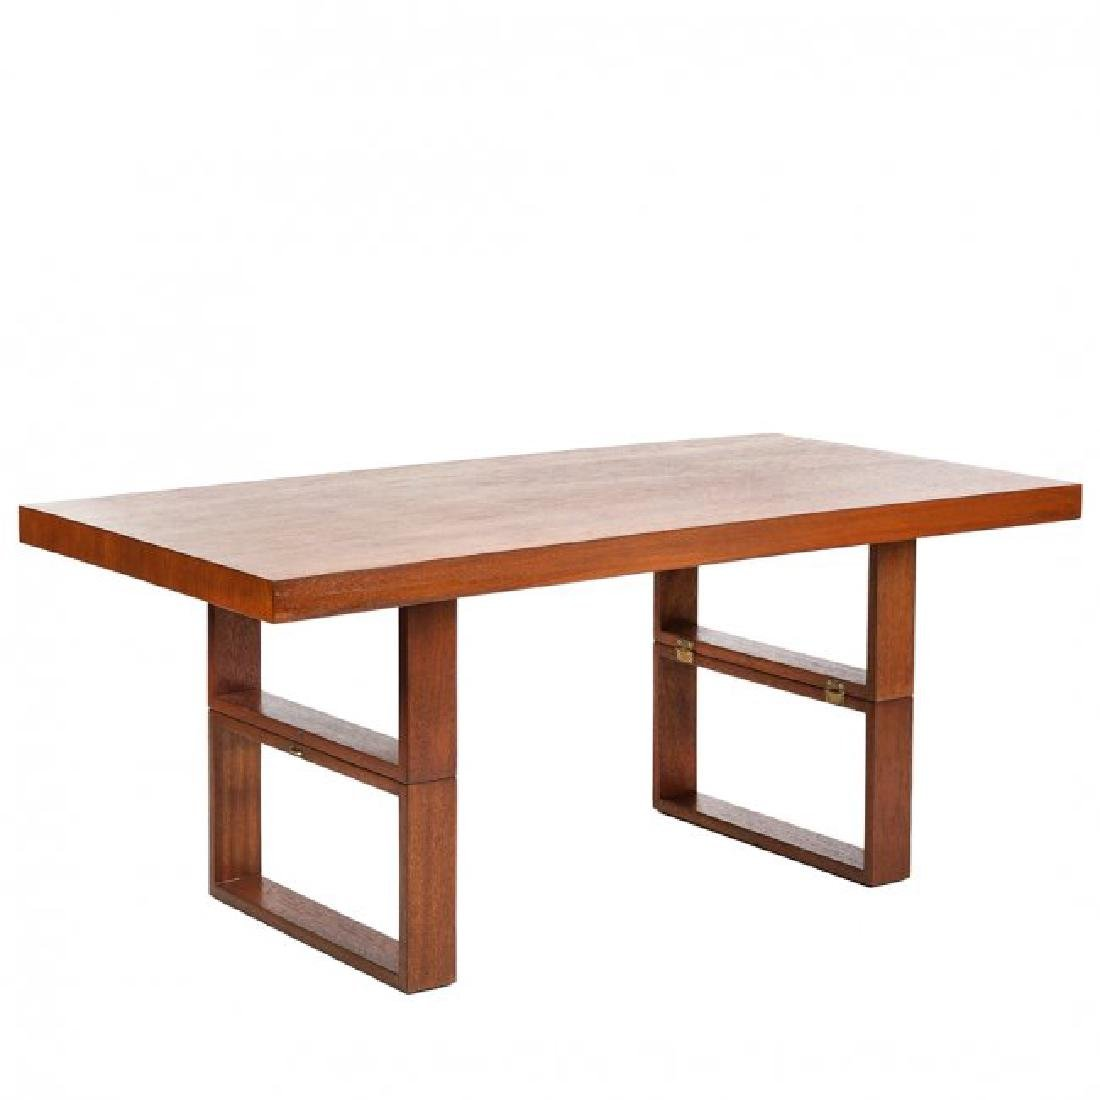 Van Keppel & Green Camel Table - 2